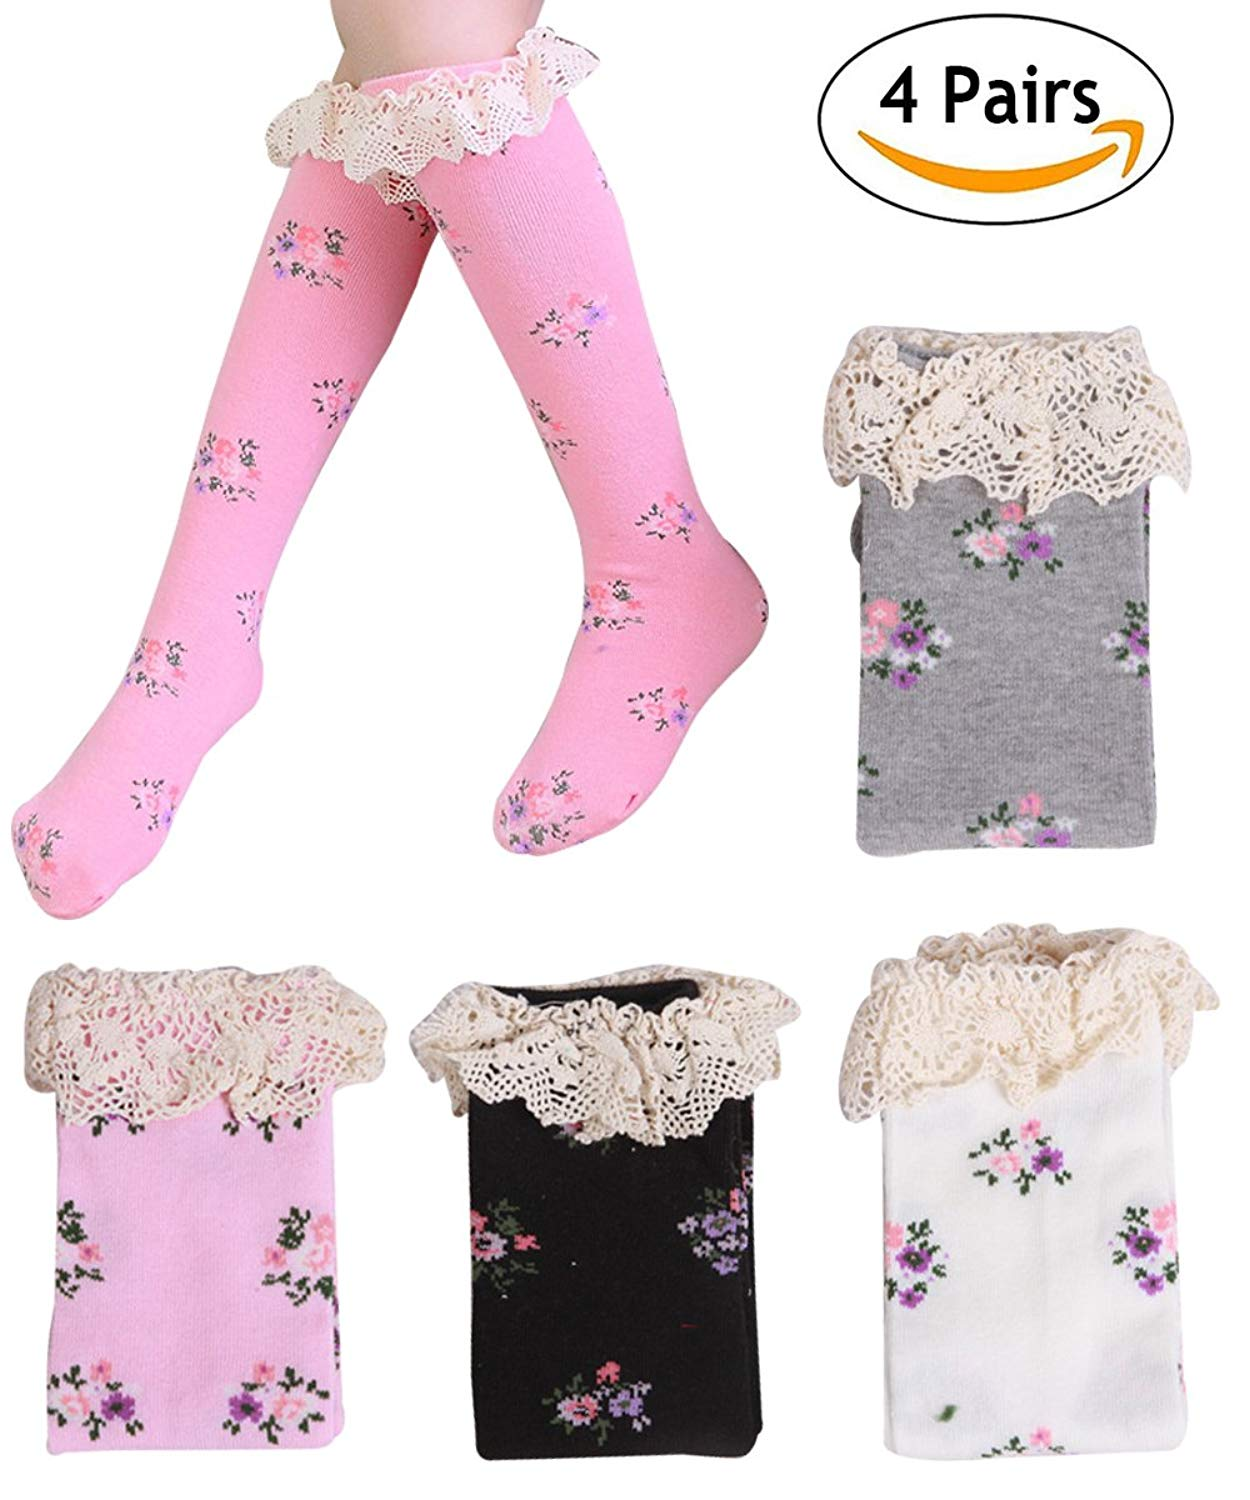 4b93f028f8b Get Quotations · Girls  Soft Lace Trim Knee High Tube Socks Toddler Cotton  Socks 4 Pairs